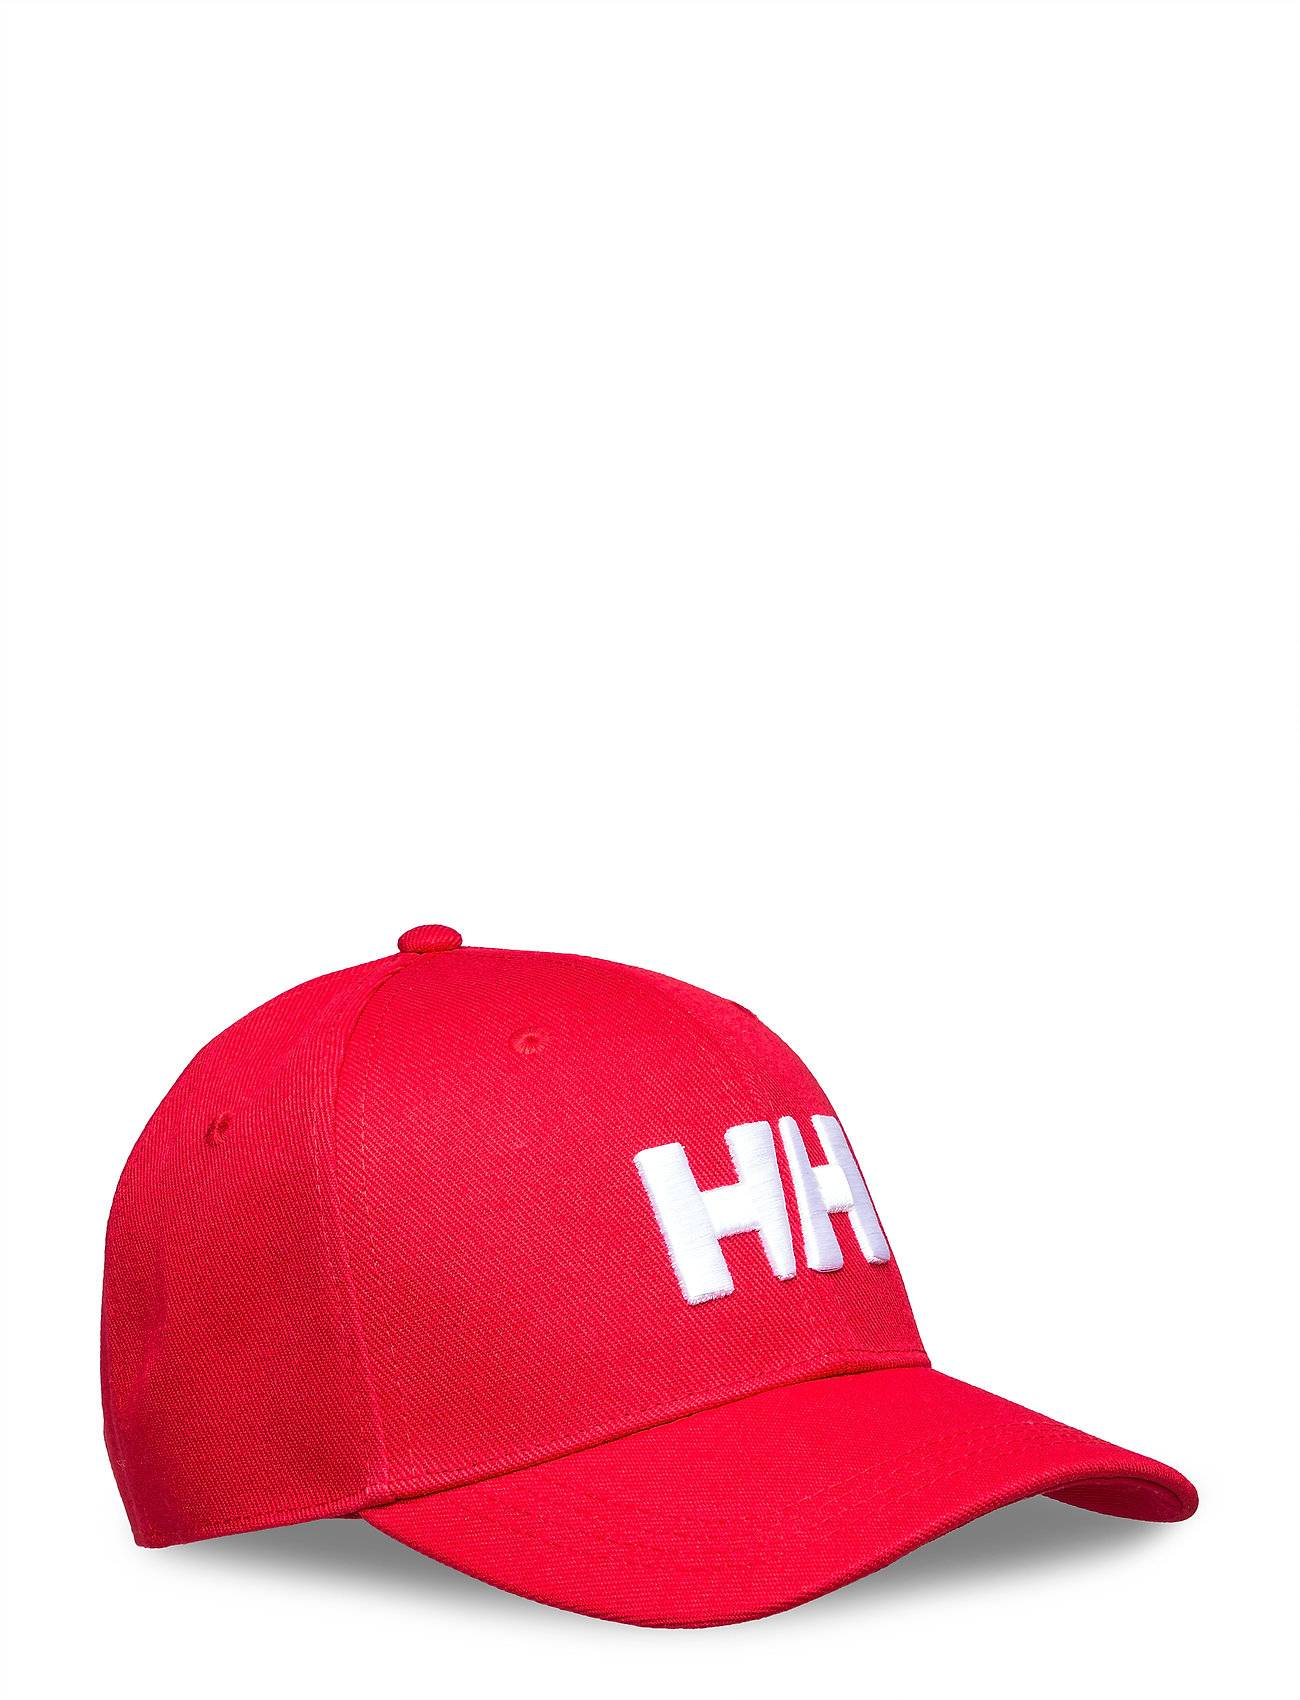 Helly Hansen Hh Brand Cap Accessories Headwear Caps Punainen